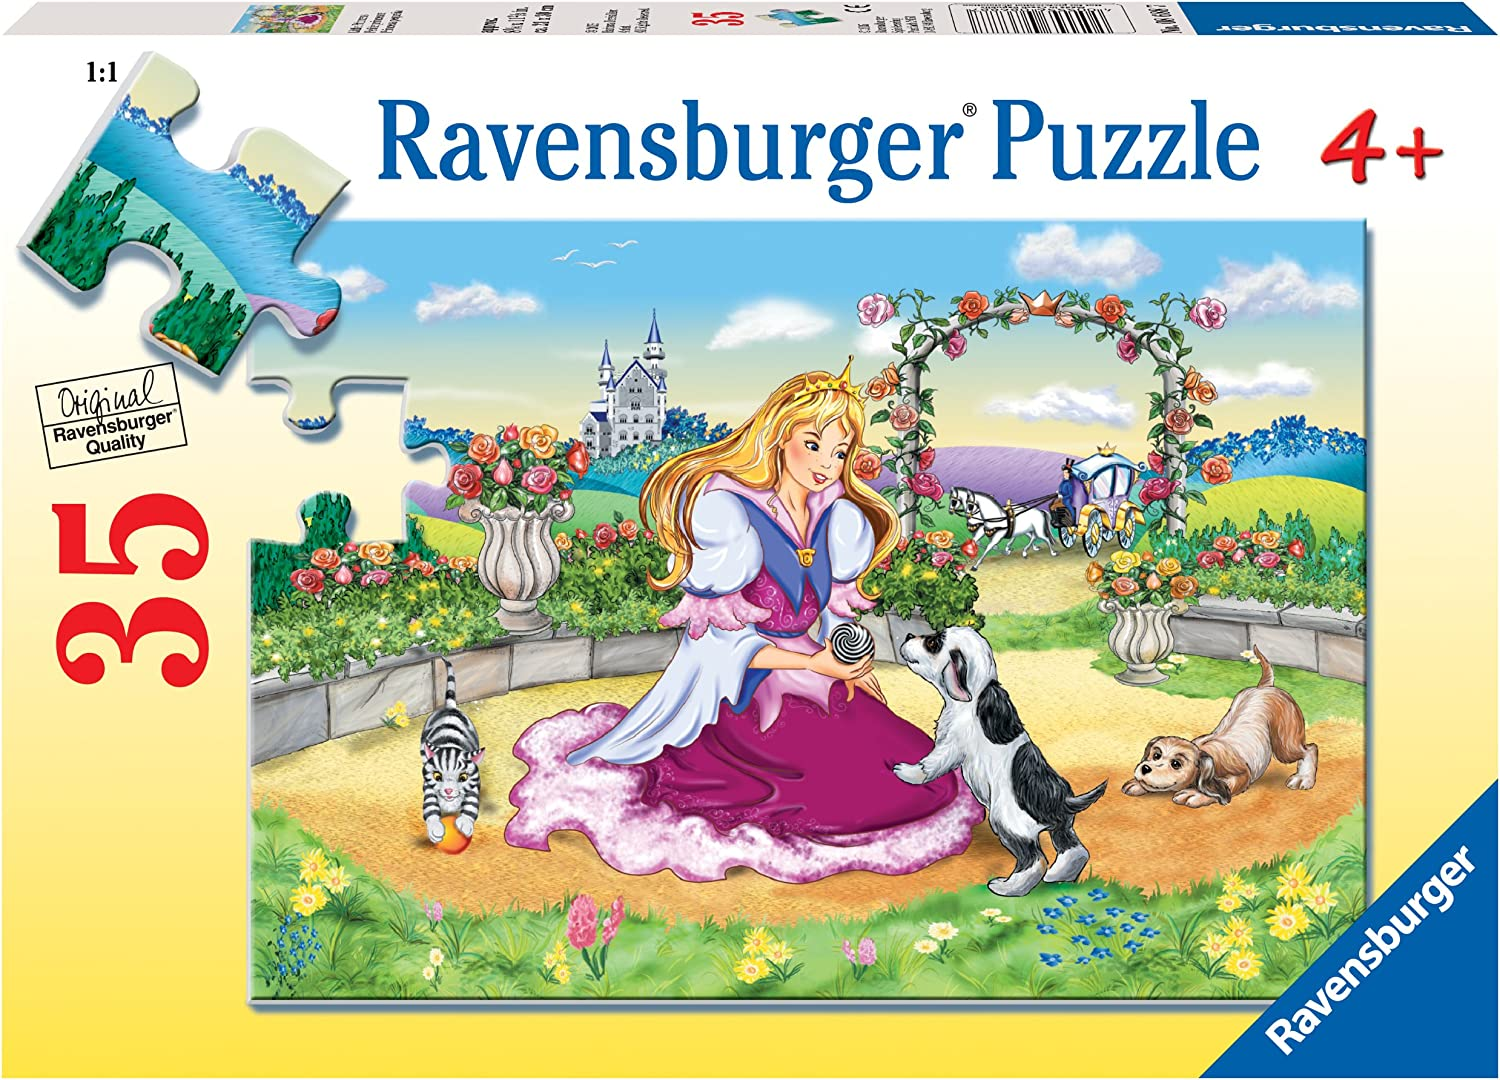 Every Piece is Unique Pieces Fit Together Perfectly 8688 35 Piece Jigsaw Puzzle for Kids Ravensburger Little Princess